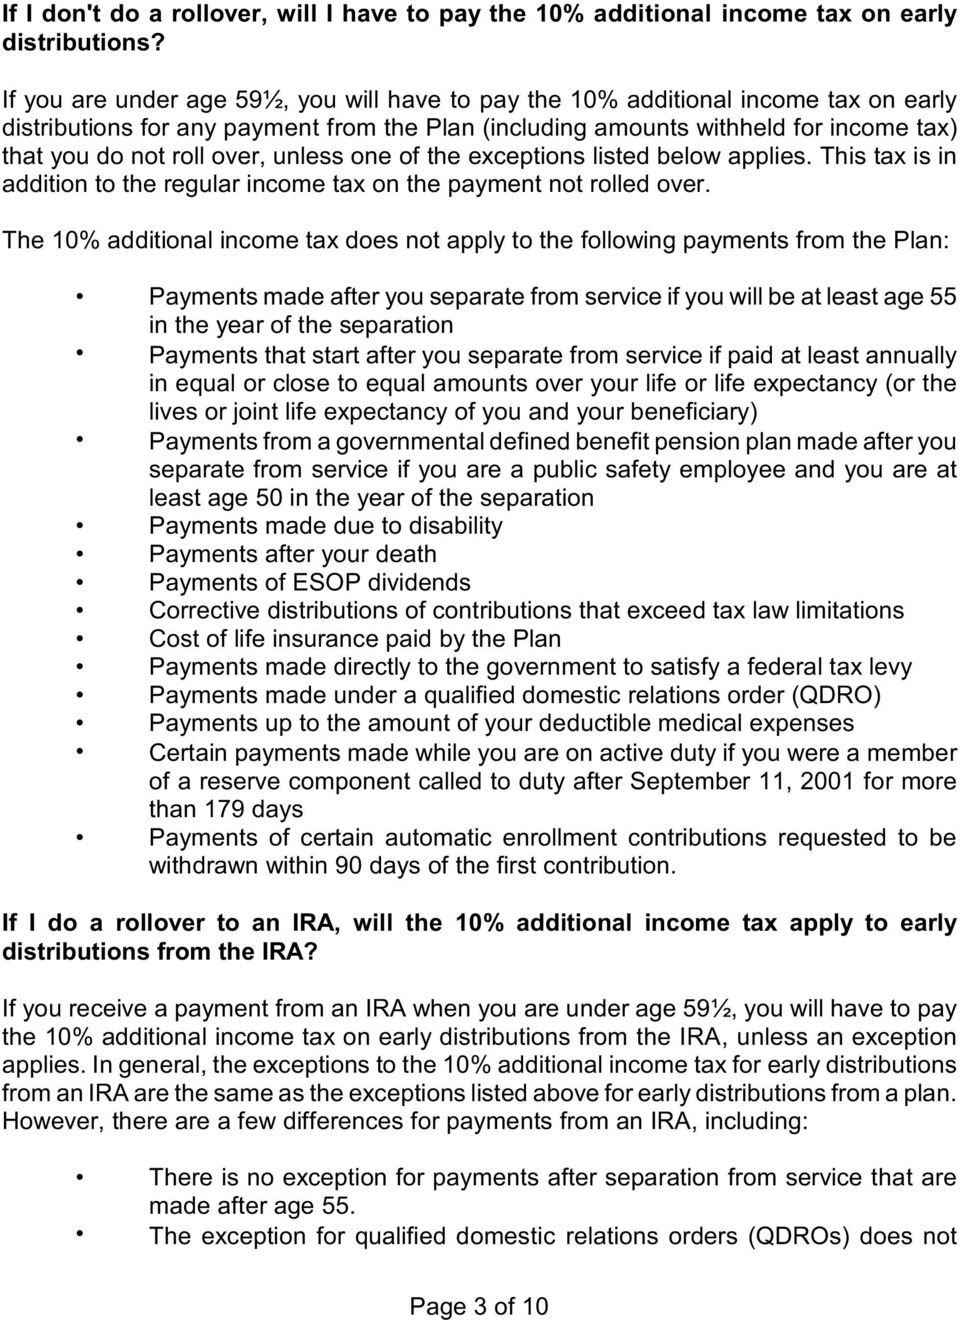 over, unless one of the exceptions listed below applies. This tax is in addition to the regular income tax on the payment not rolled over.